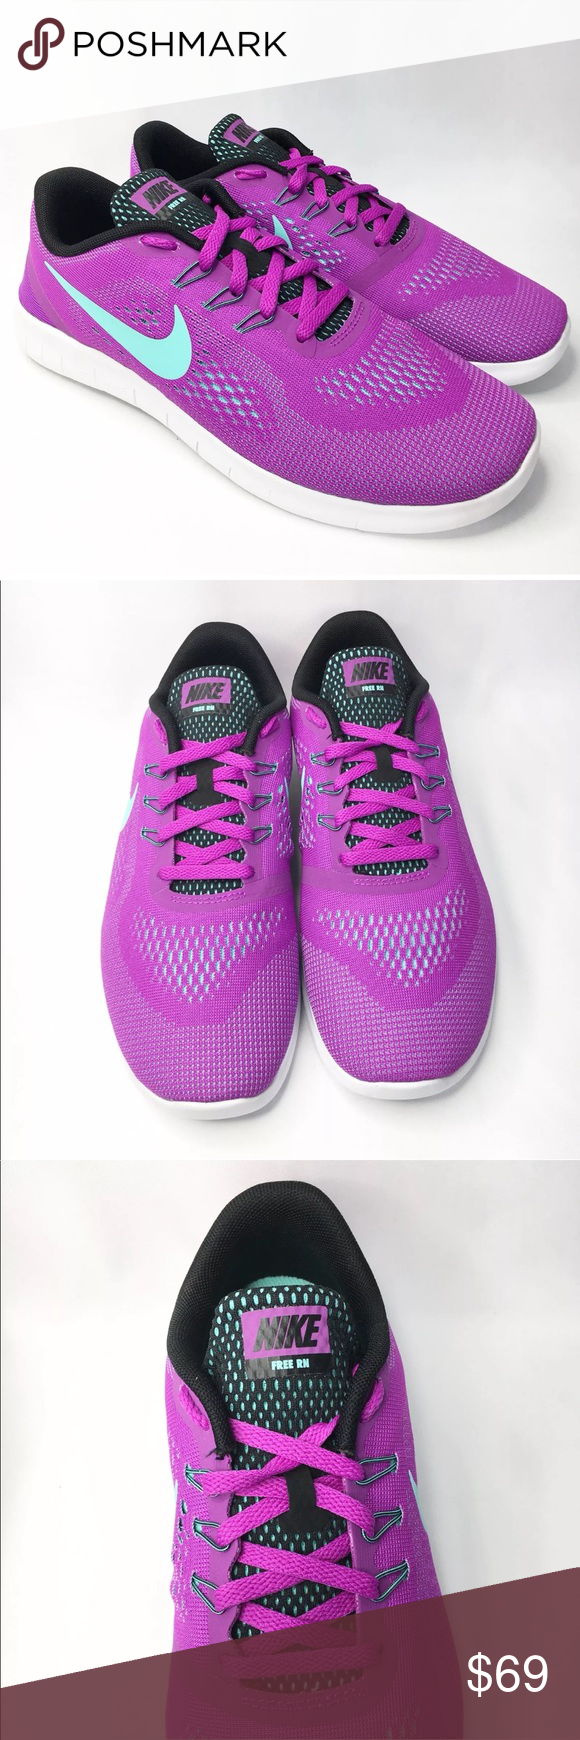 65605cd766ba Nike Free Run Purple Running Shoes Nike Free Run Purple Running Shoes Size  7Y fits Women s Size 8.5  See Nike Shoe Size Chart in pictures Brand New.